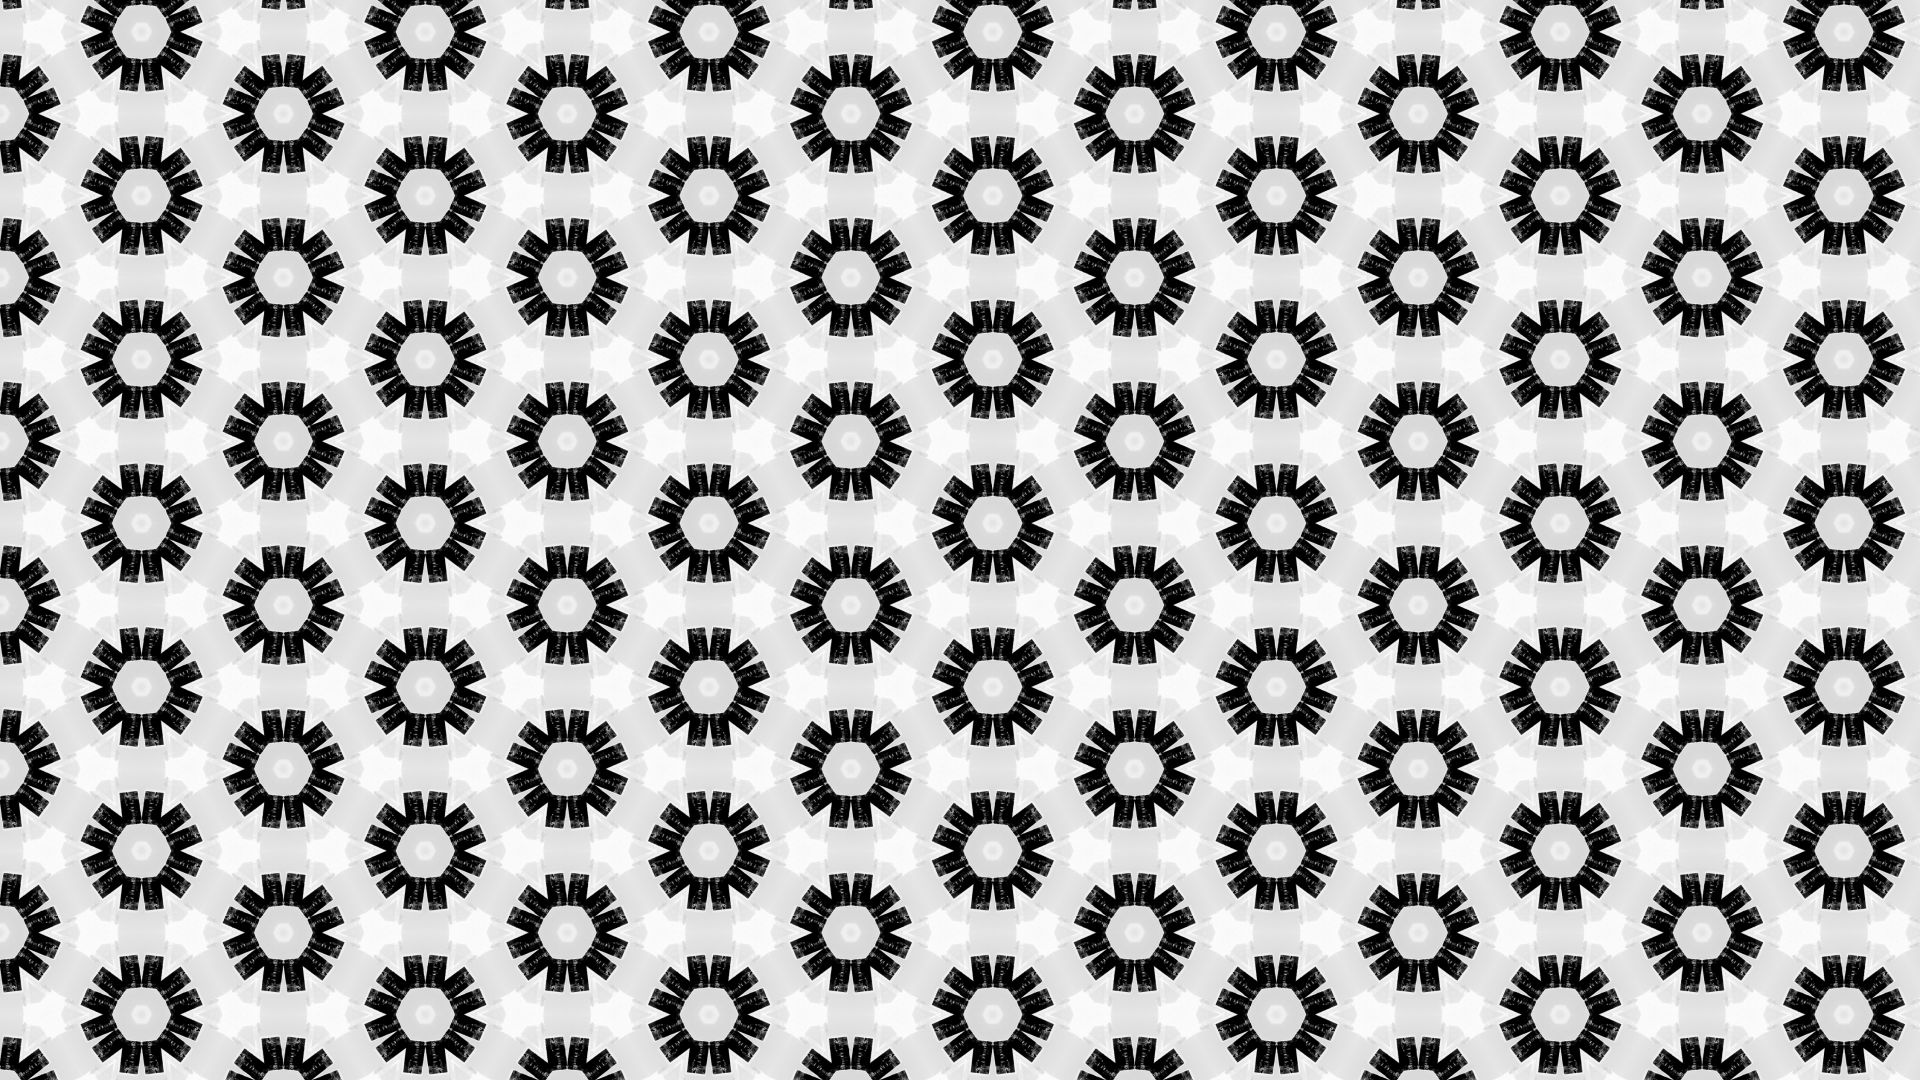 Wallpaper Circles, pattern, abstract, monochrome